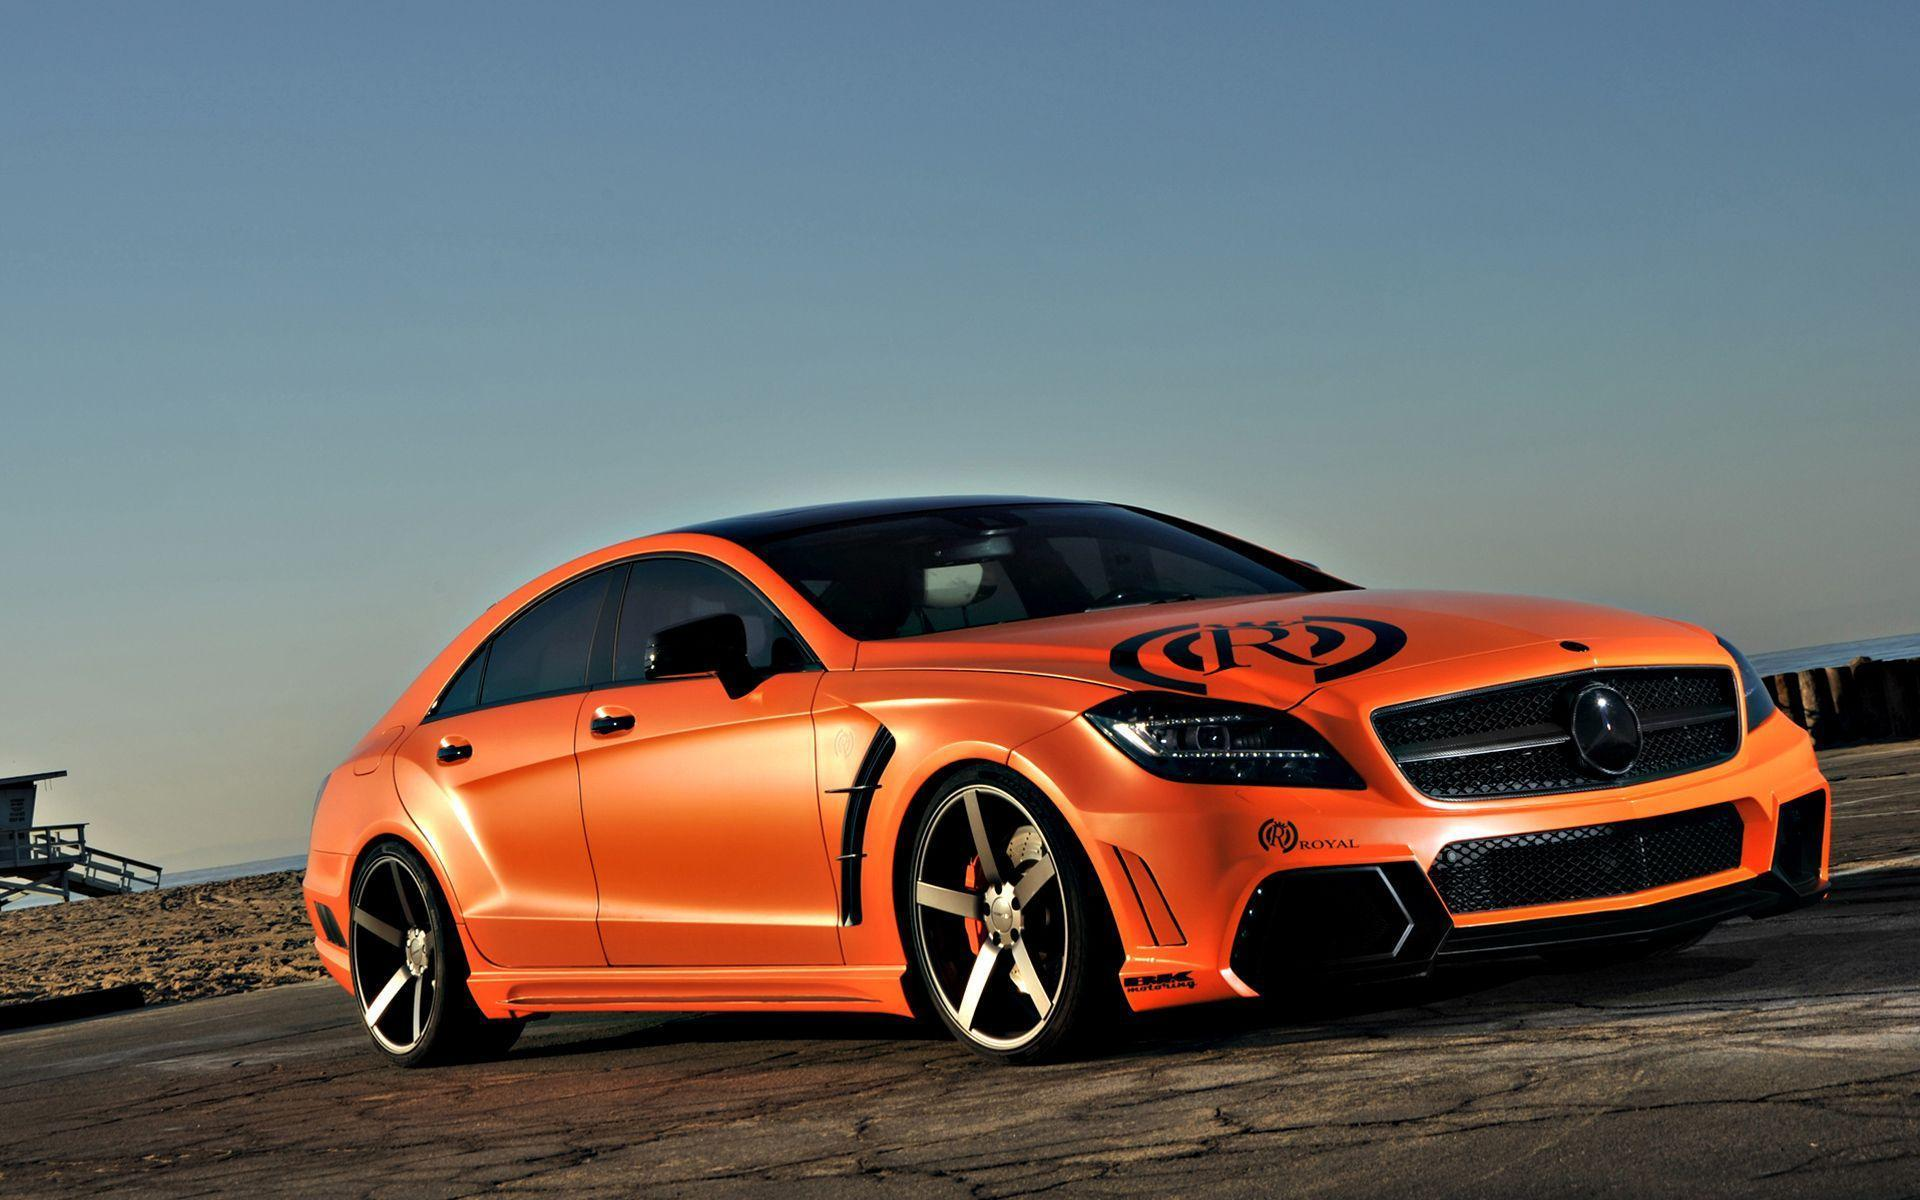 Mercedes Benz Wallpapers - Page 4 - HD Wallpapers